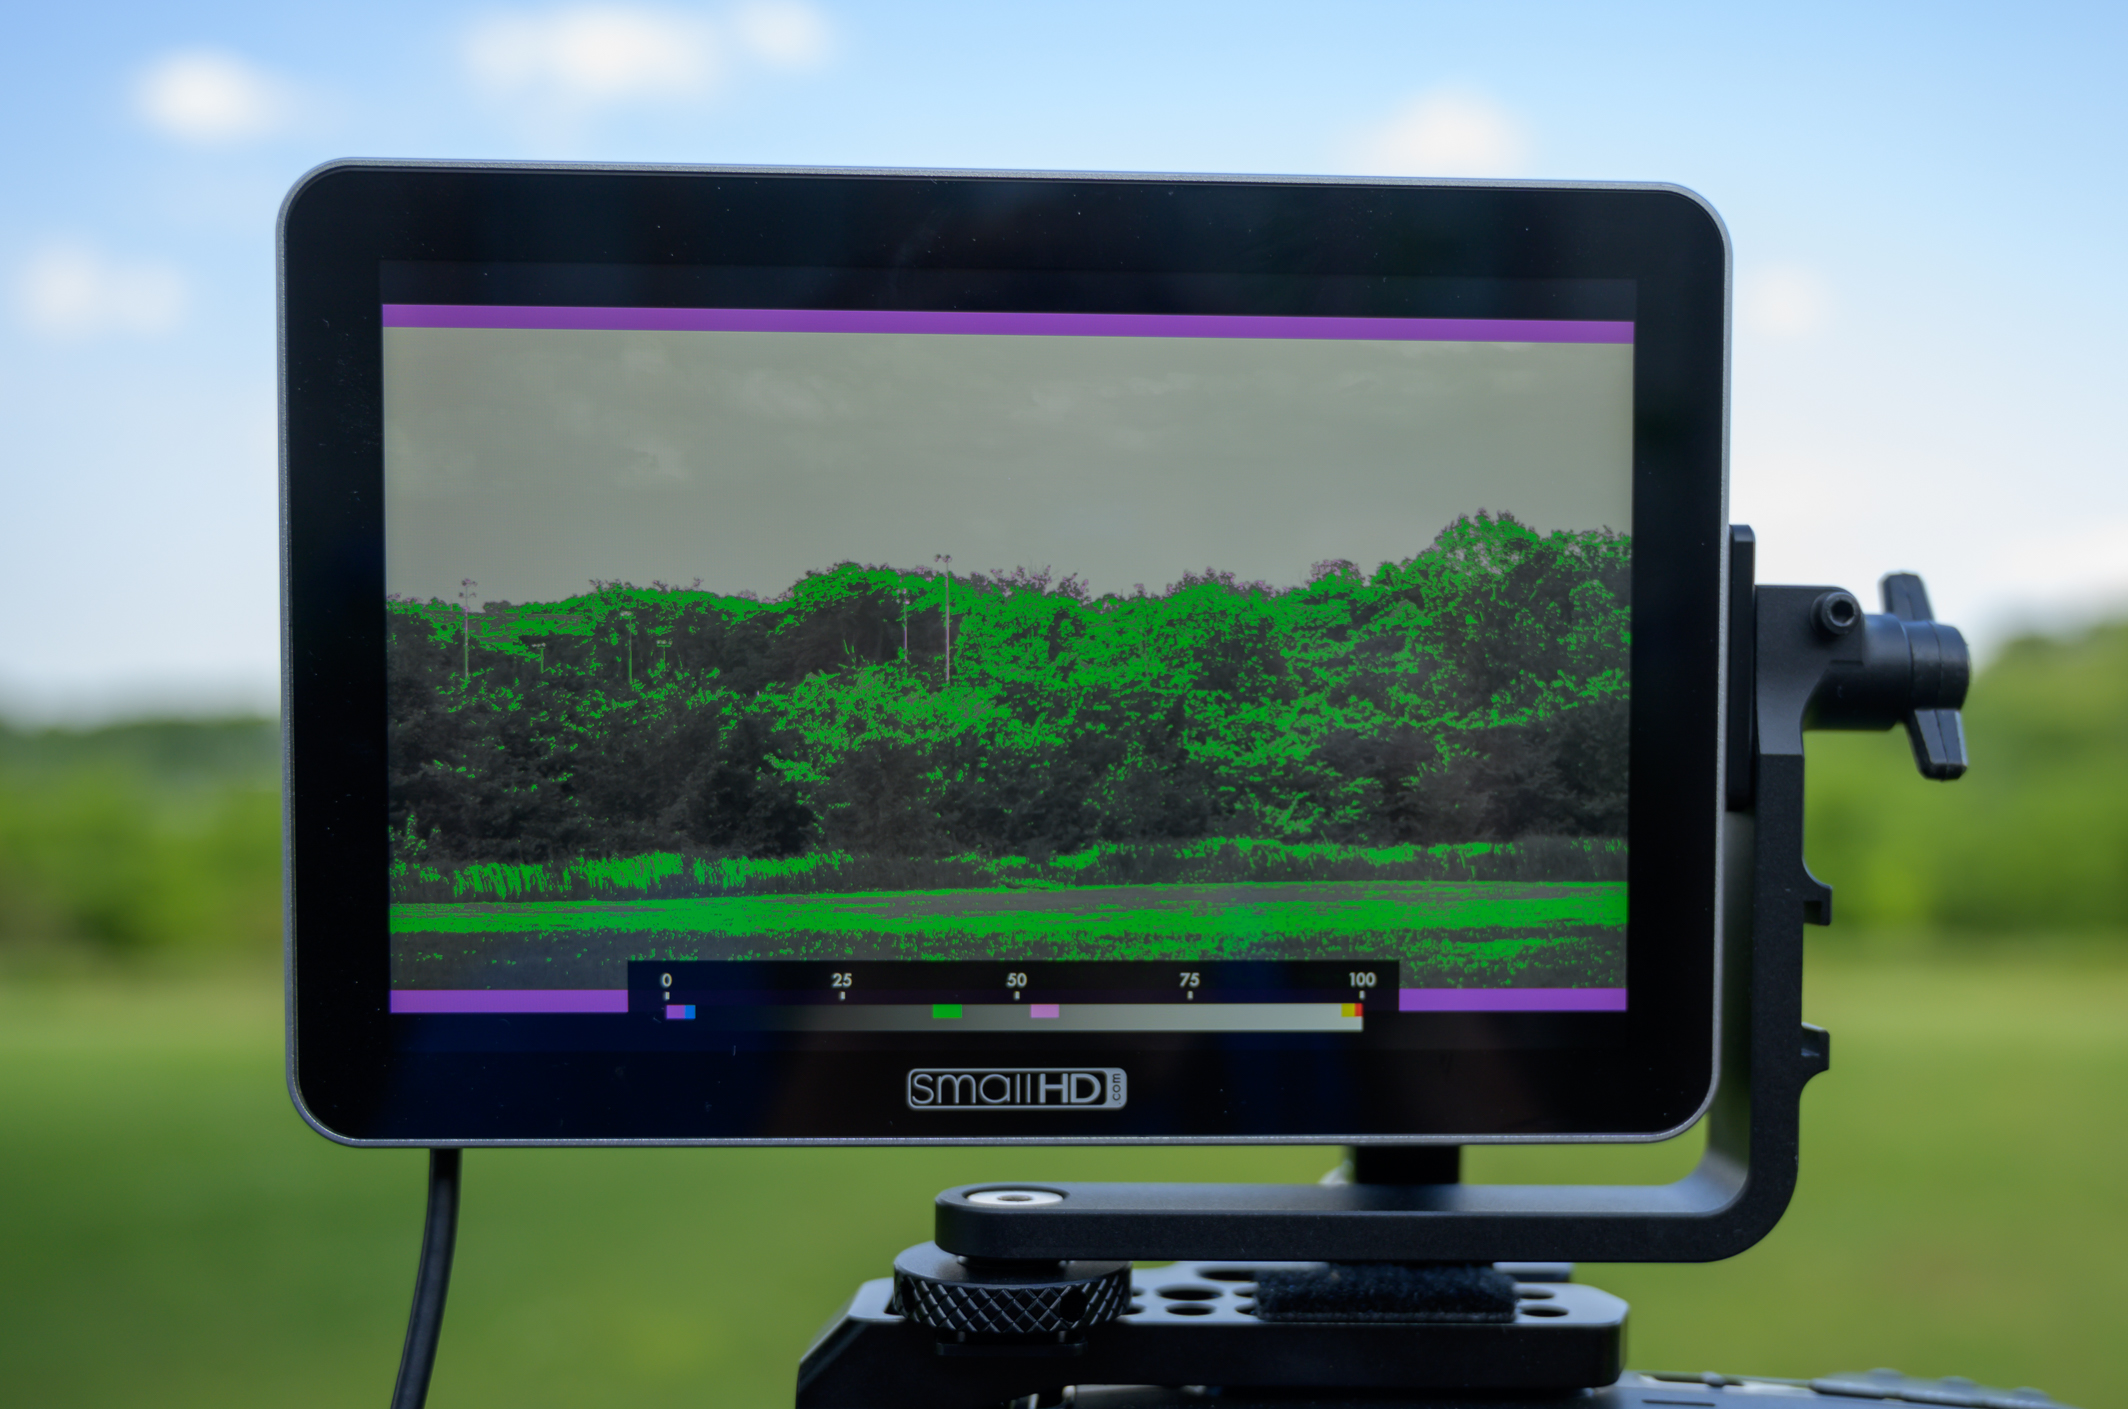 SmallHD Focus 7 Review. Is 1000 Nits Bright Enough?